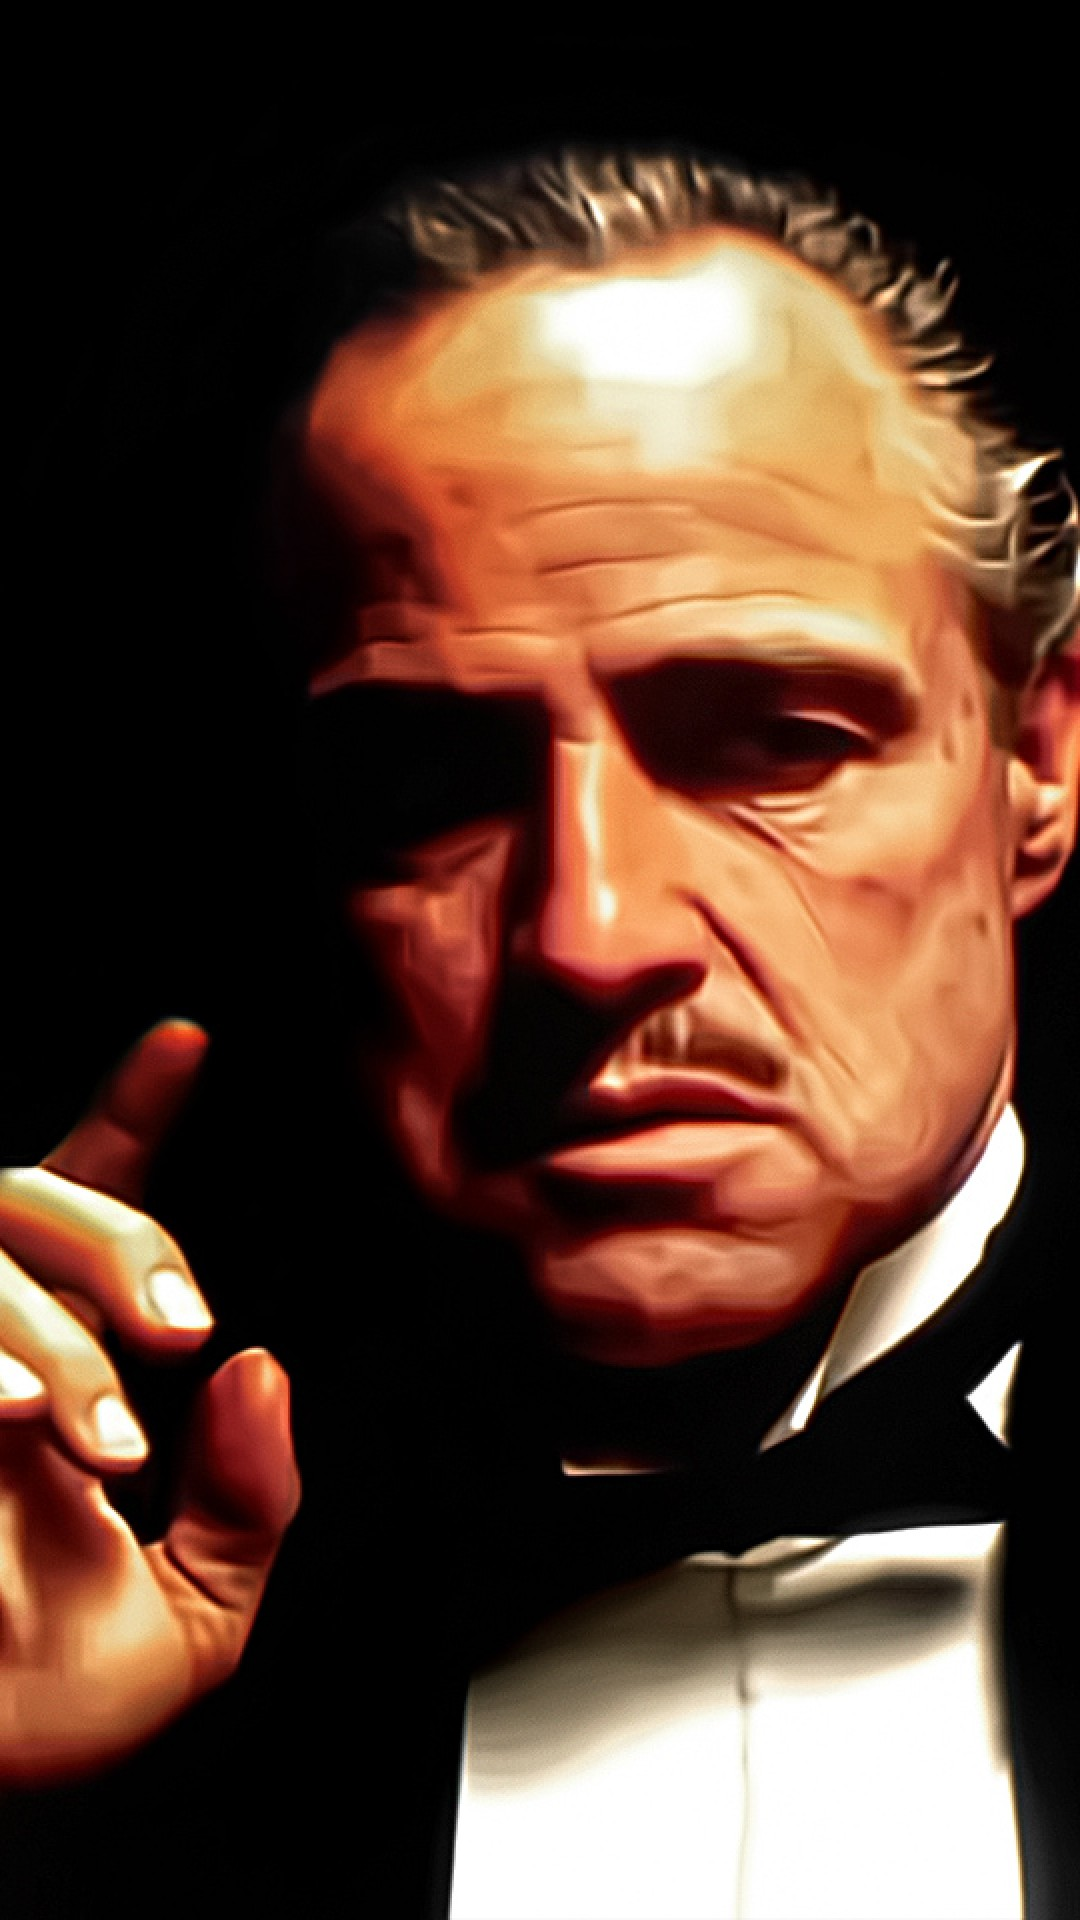 Random attachment Don vito corleone wallpaper for iphone hd background 1080x1920